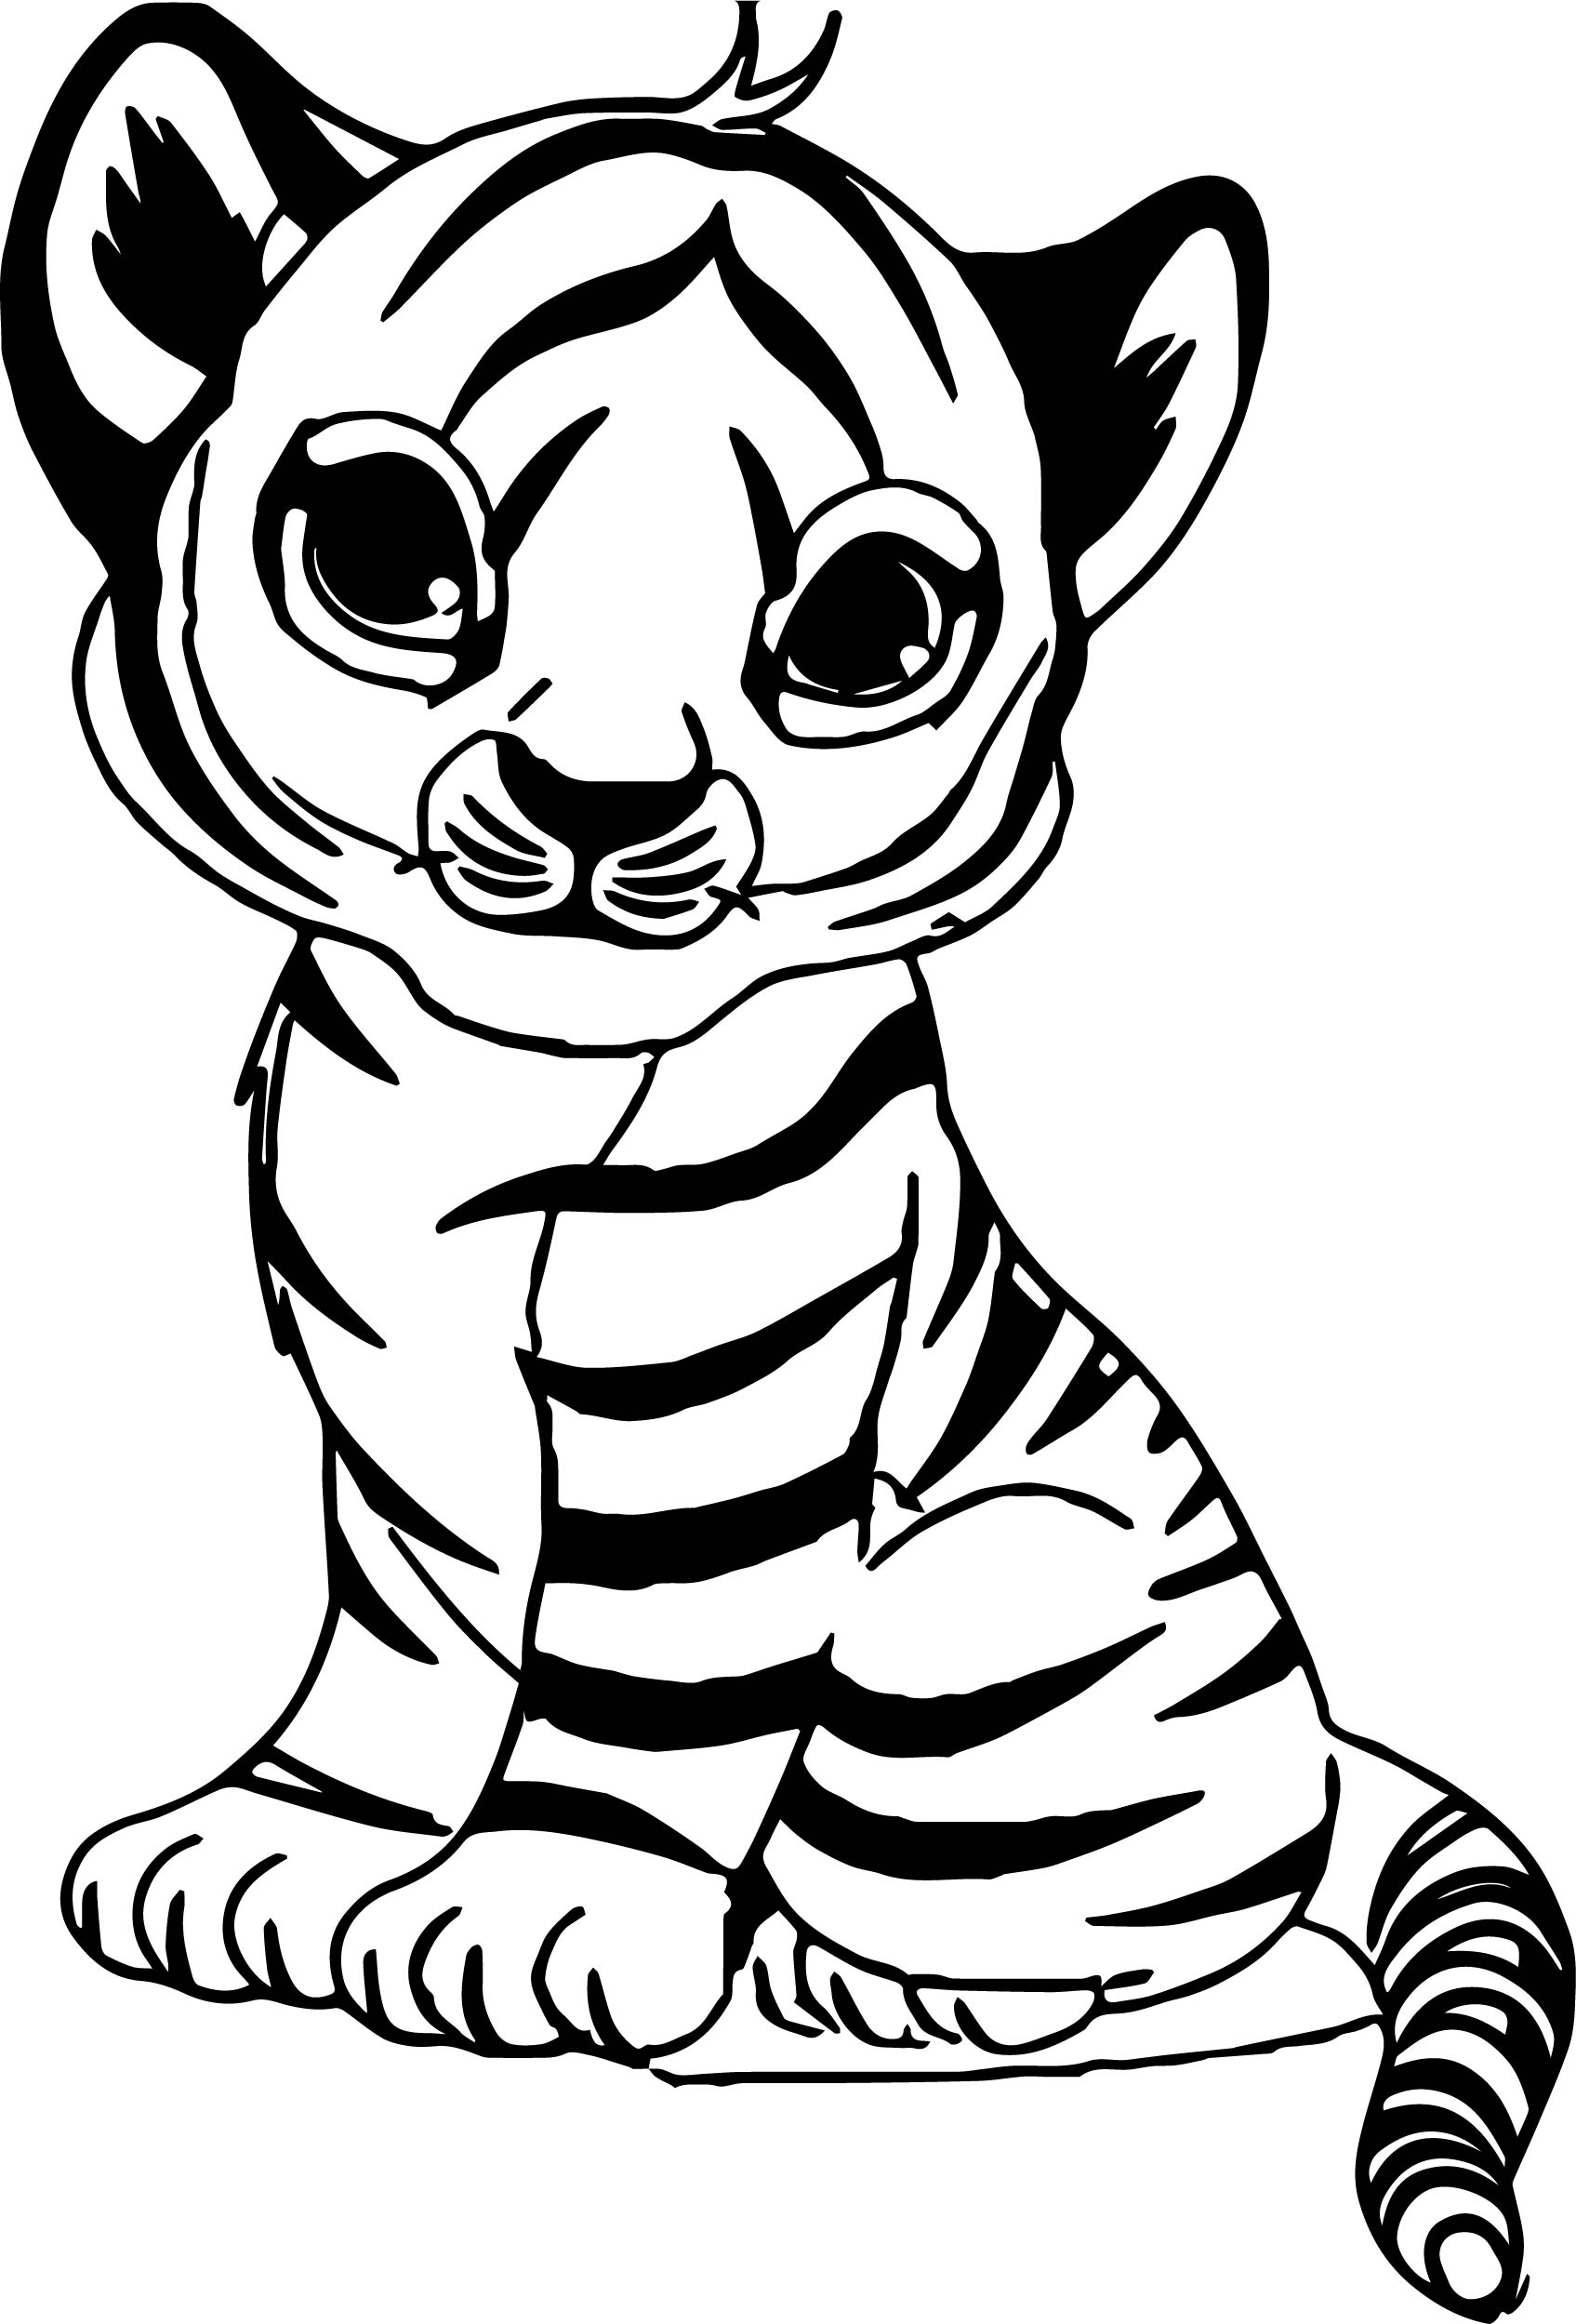 1695x2499 Baby Tiger Coloring Pages Bratz Within Of Cute Tigers Fair